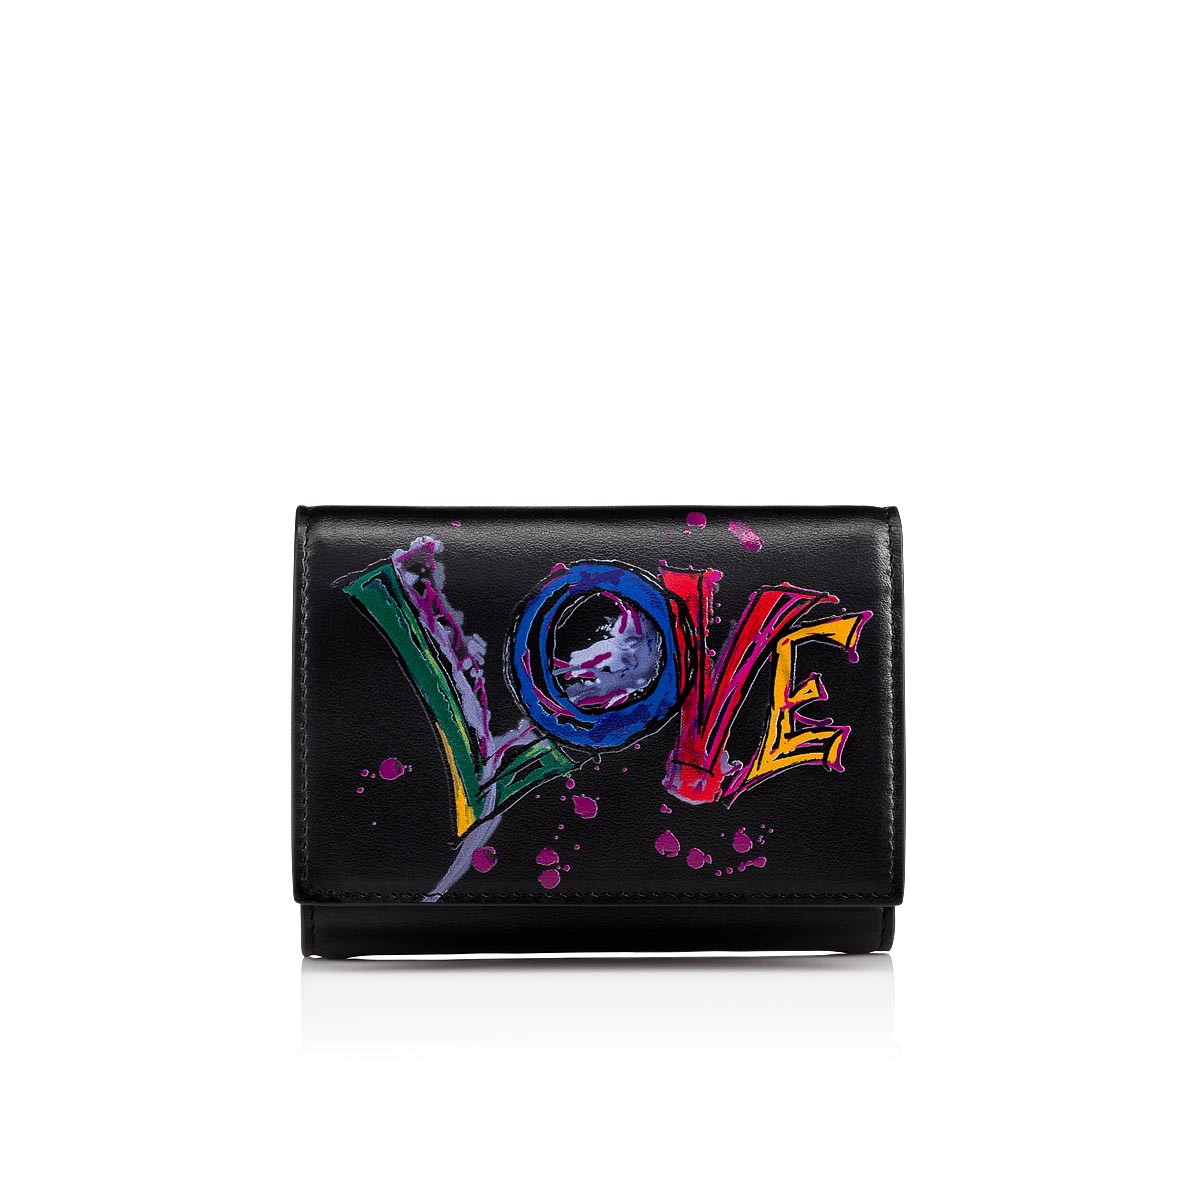 Accessories - Boudoir Wallet - Christian Louboutin